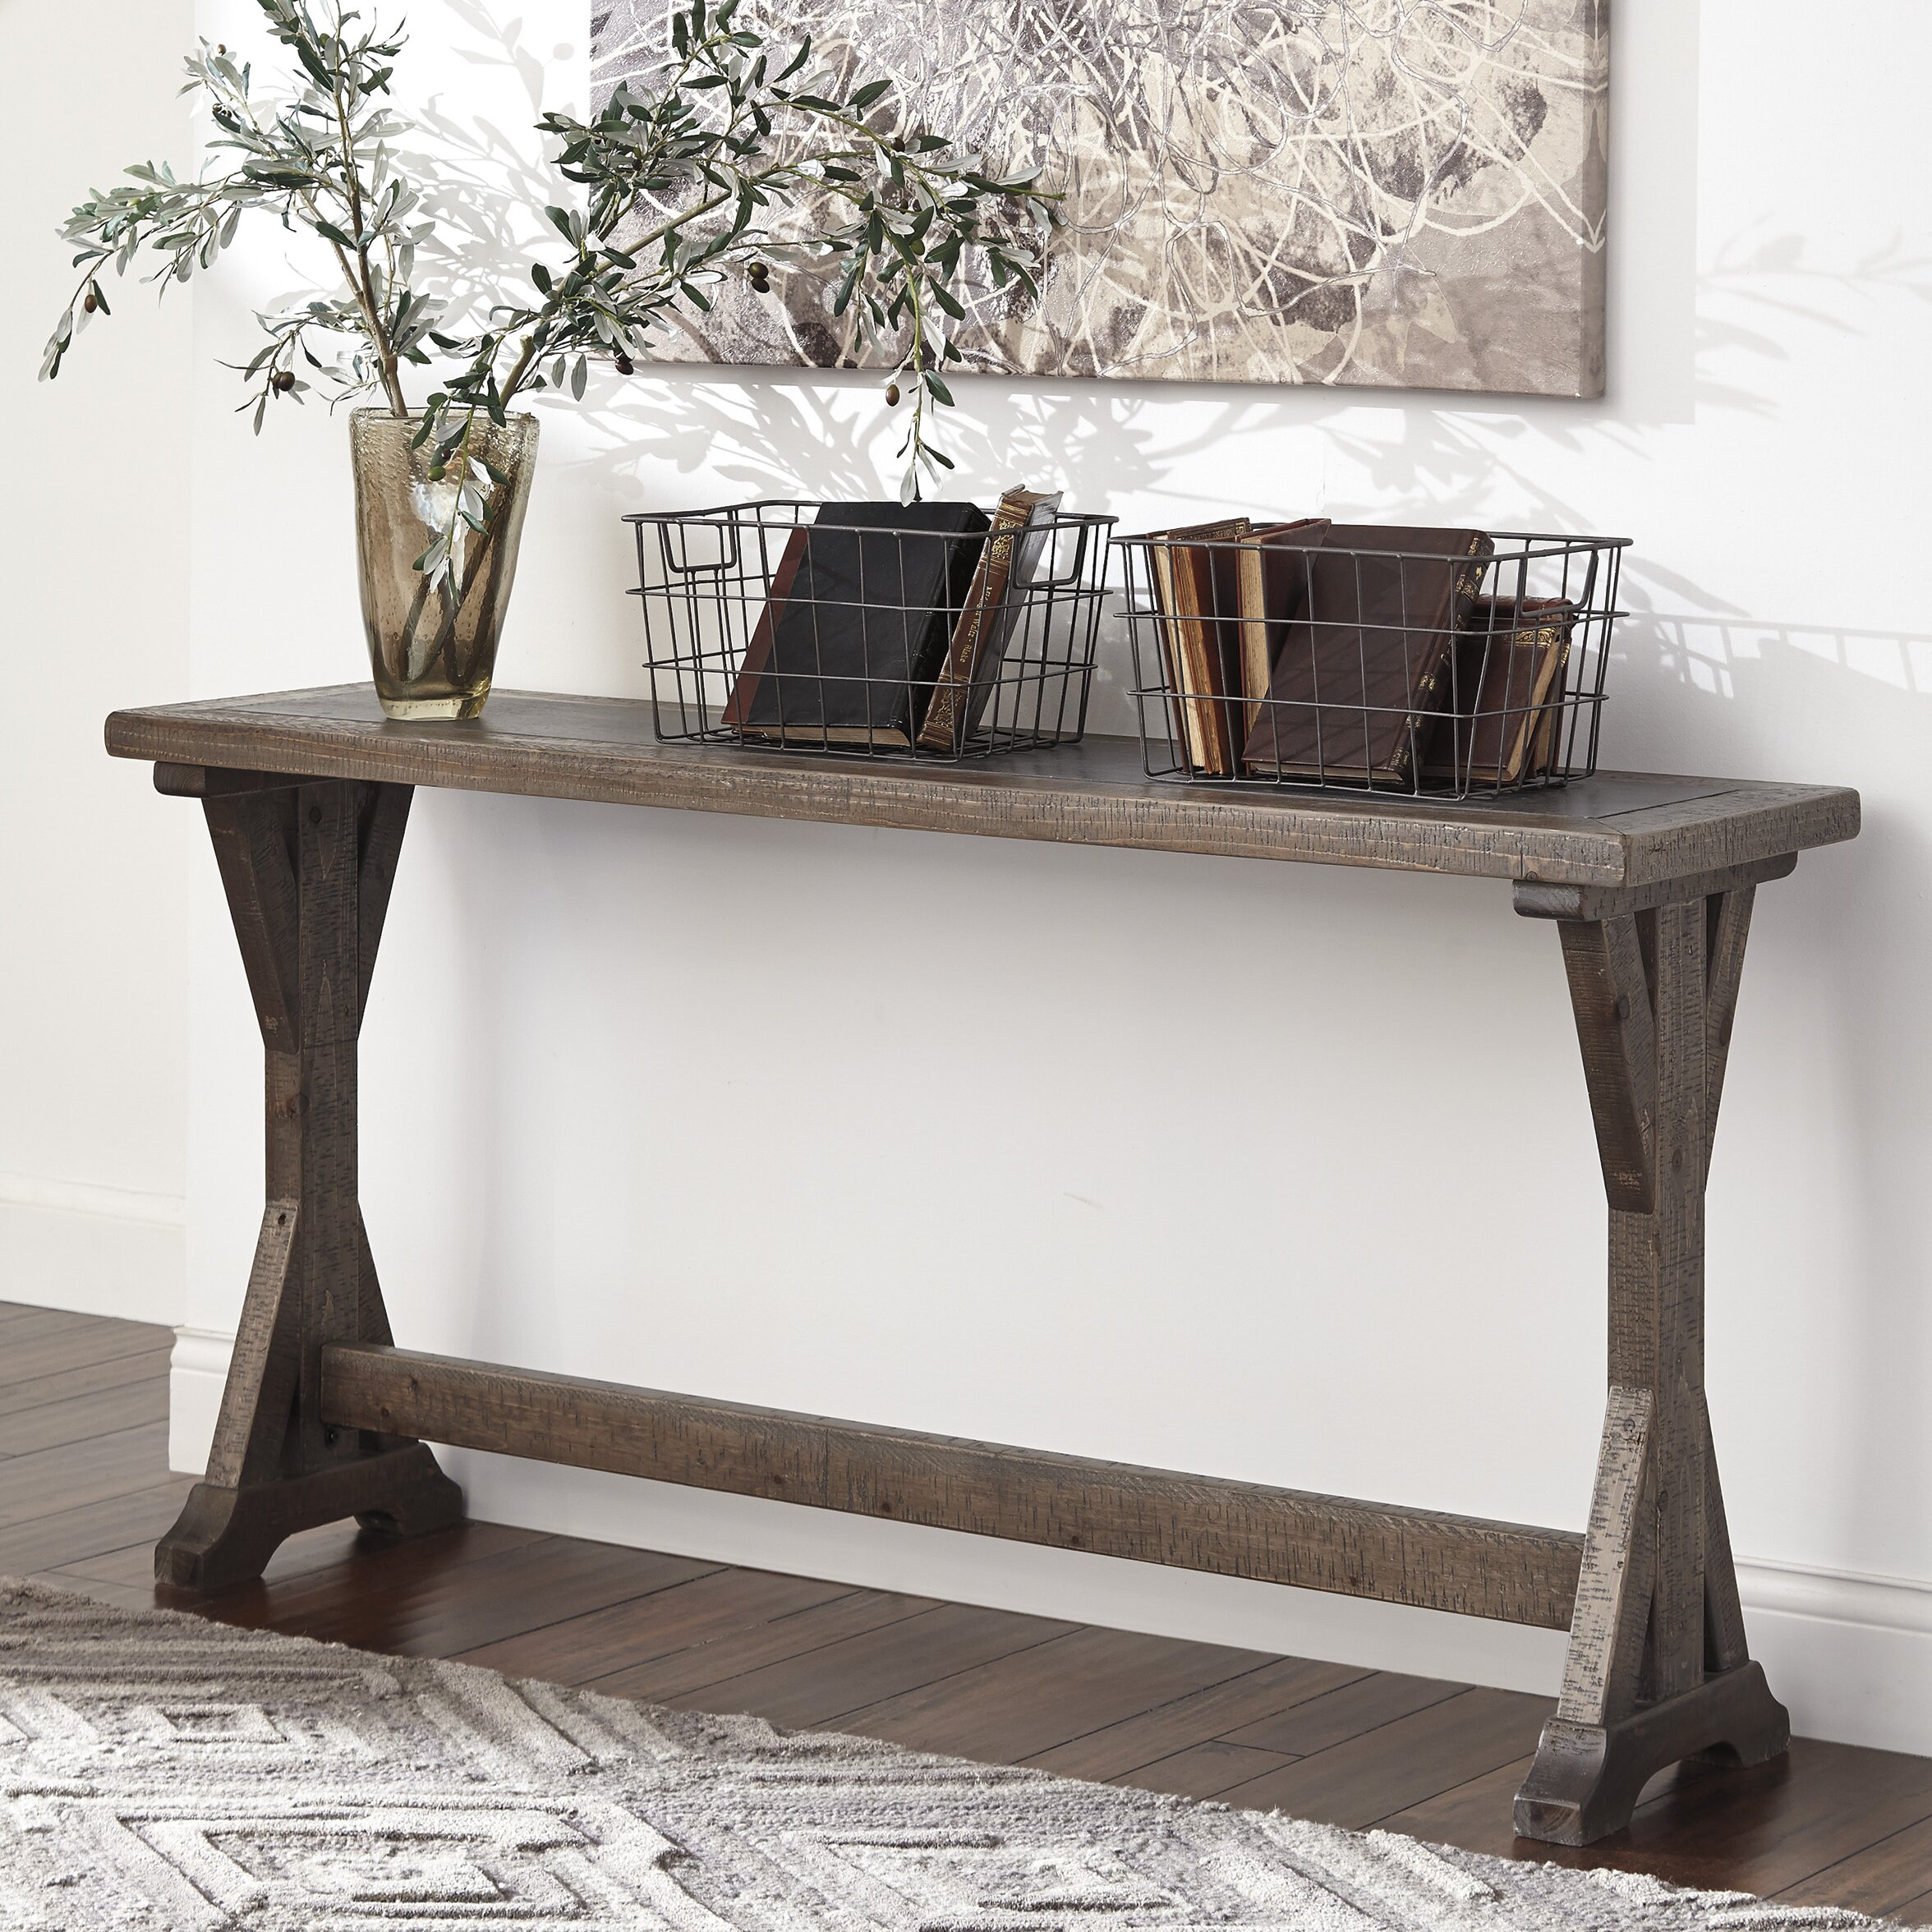 Wayfair Table: Signature Design By Ashley Valkner Console Table & Reviews